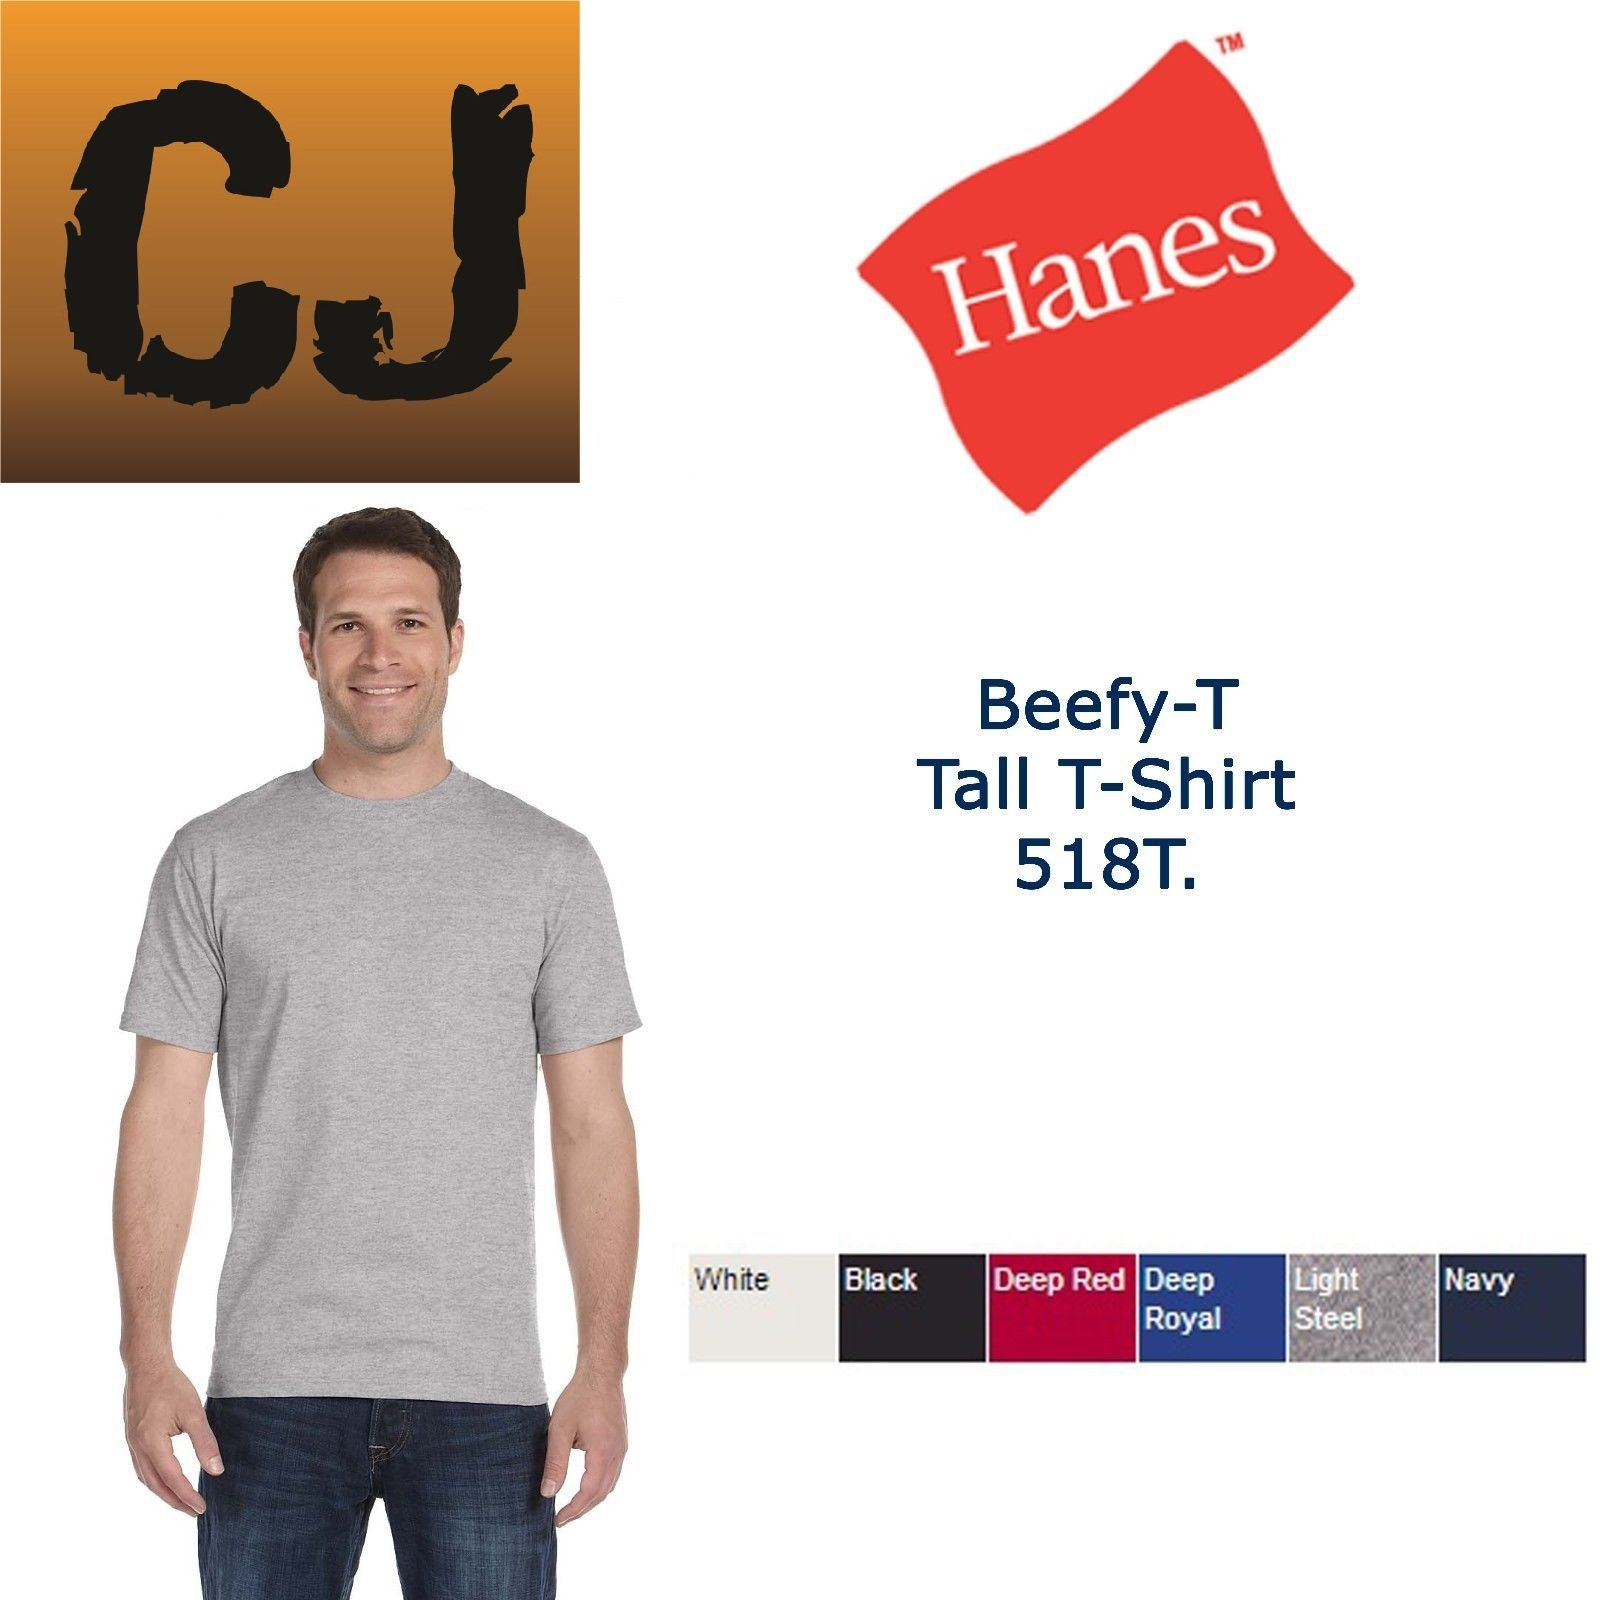 Hanes beefy t tall tagless t shirt new 6 1 oz 100 cotton for Hanes beefy t custom shirts